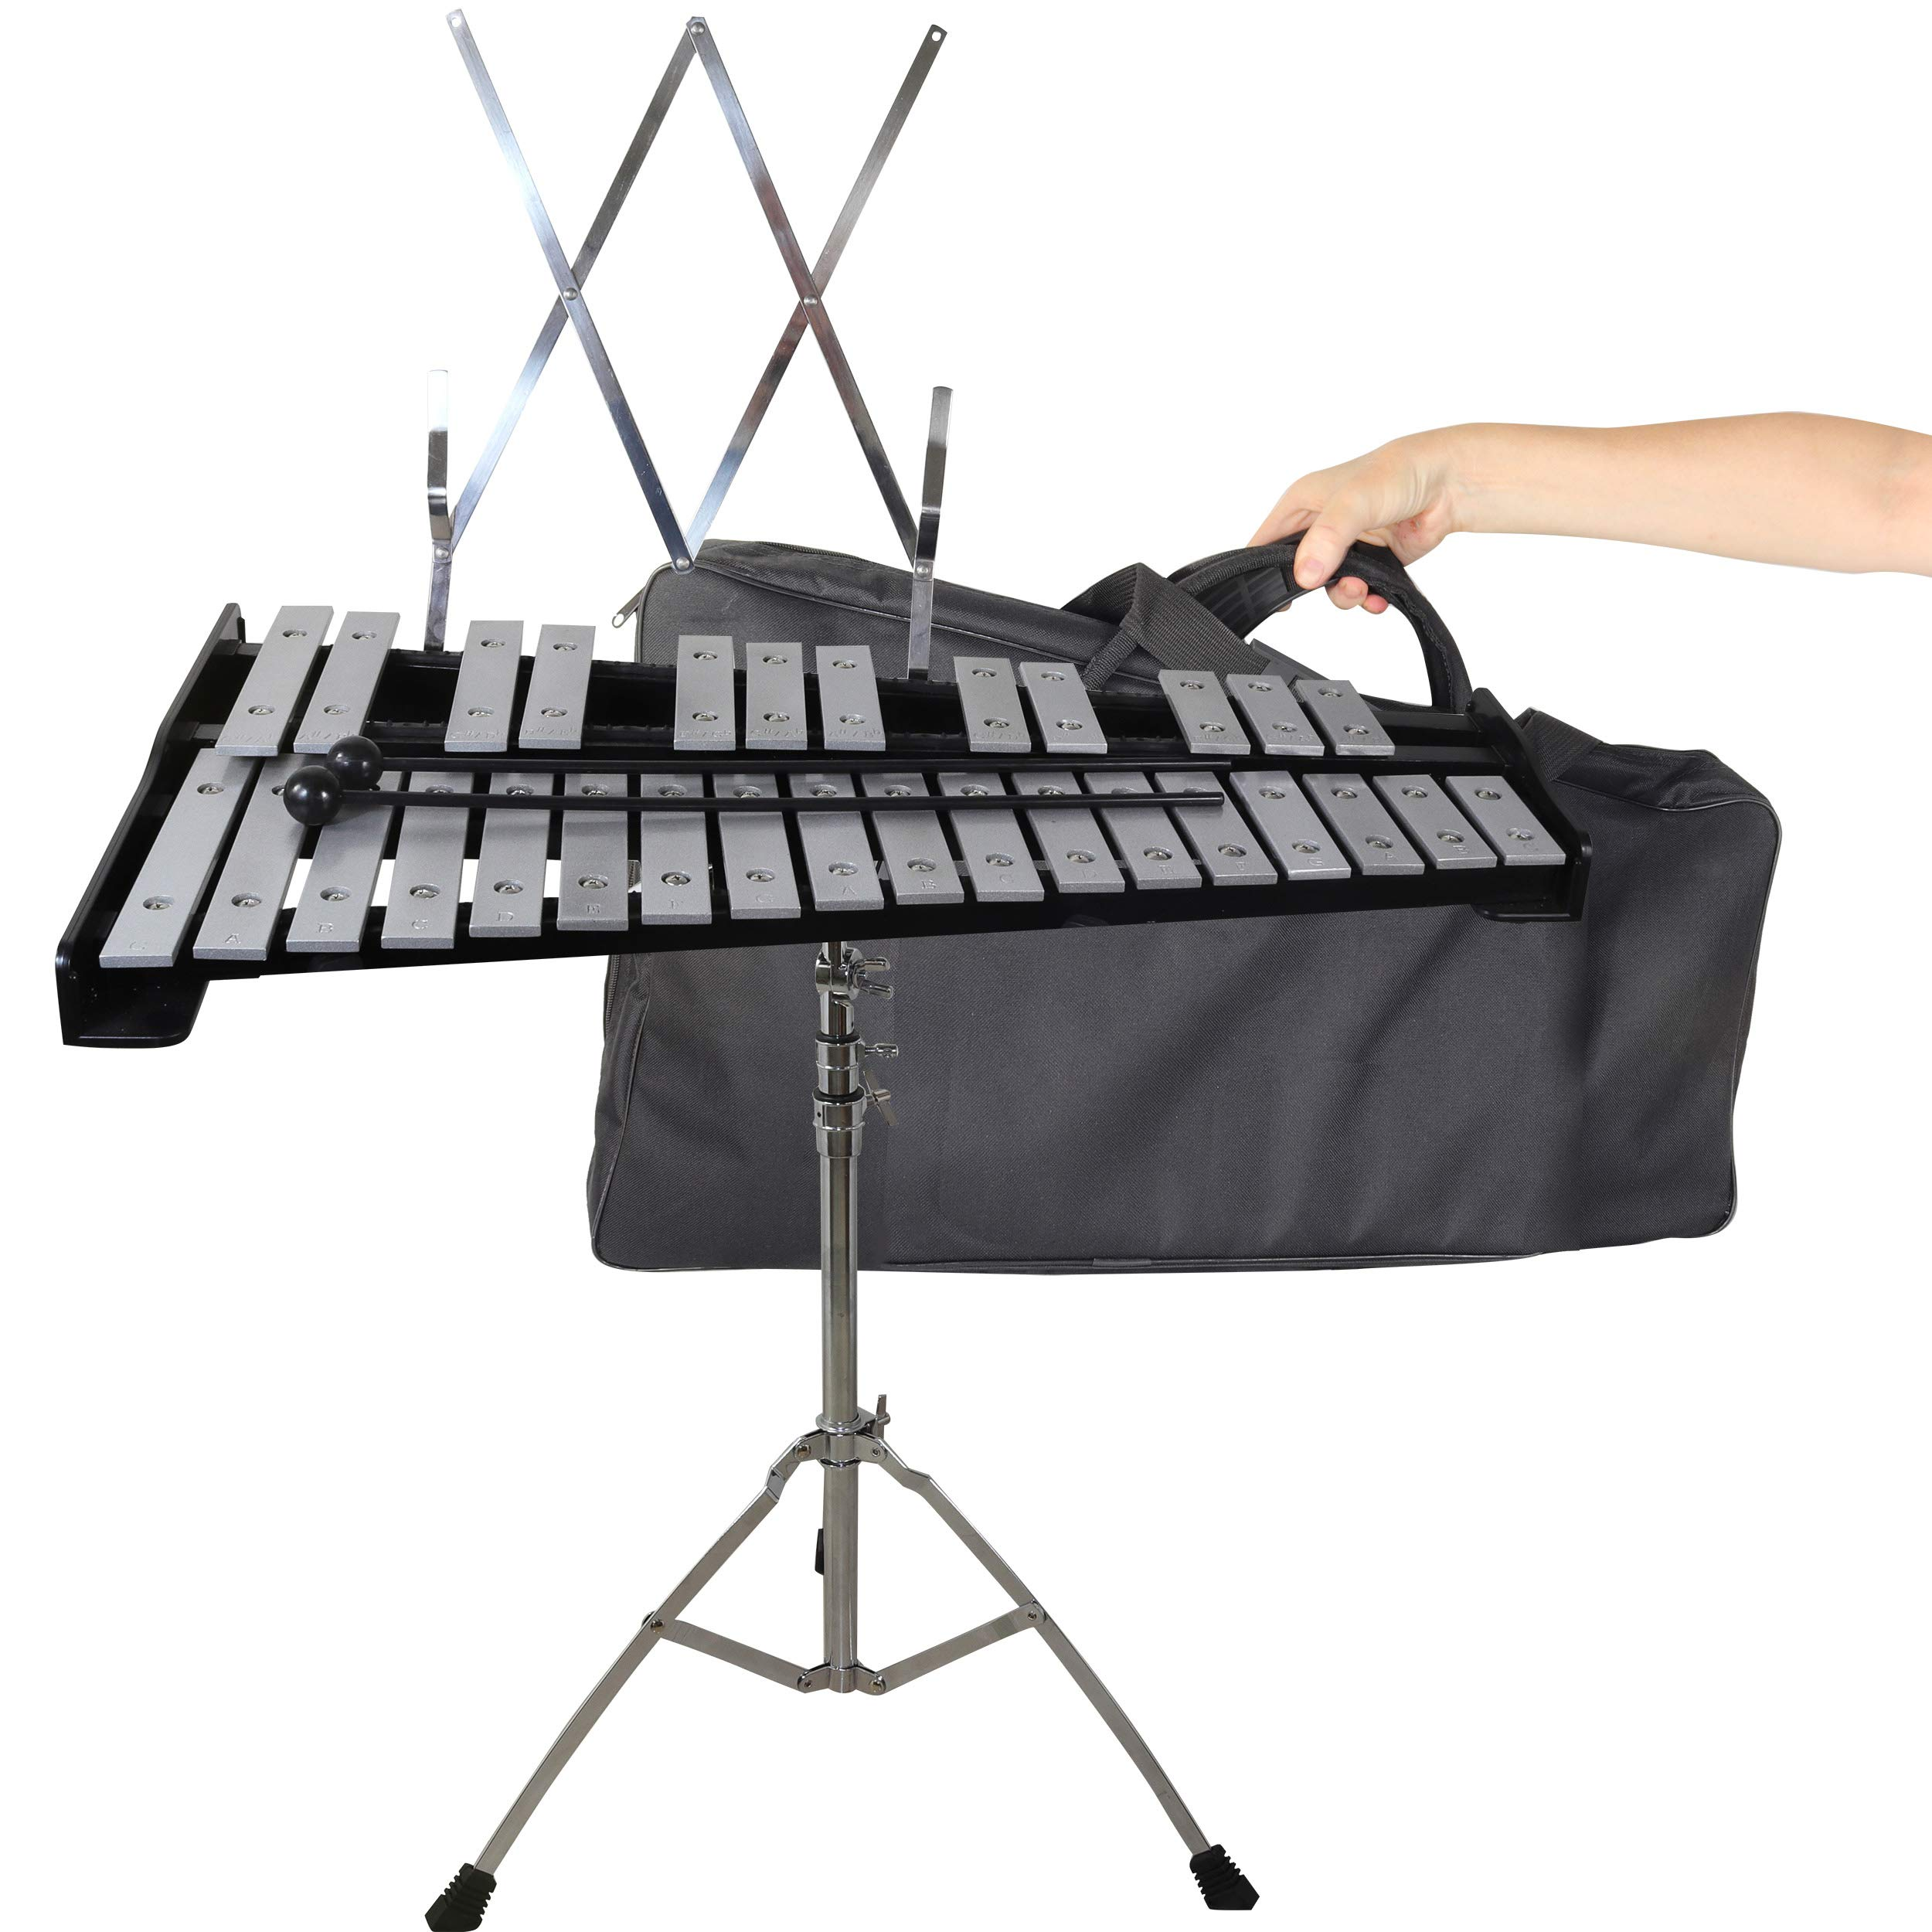 30 note Professional Glockenspiel - Metal Bell Kit Xylophone with Stand, Note Holder and Carrying Bag by inTemenos